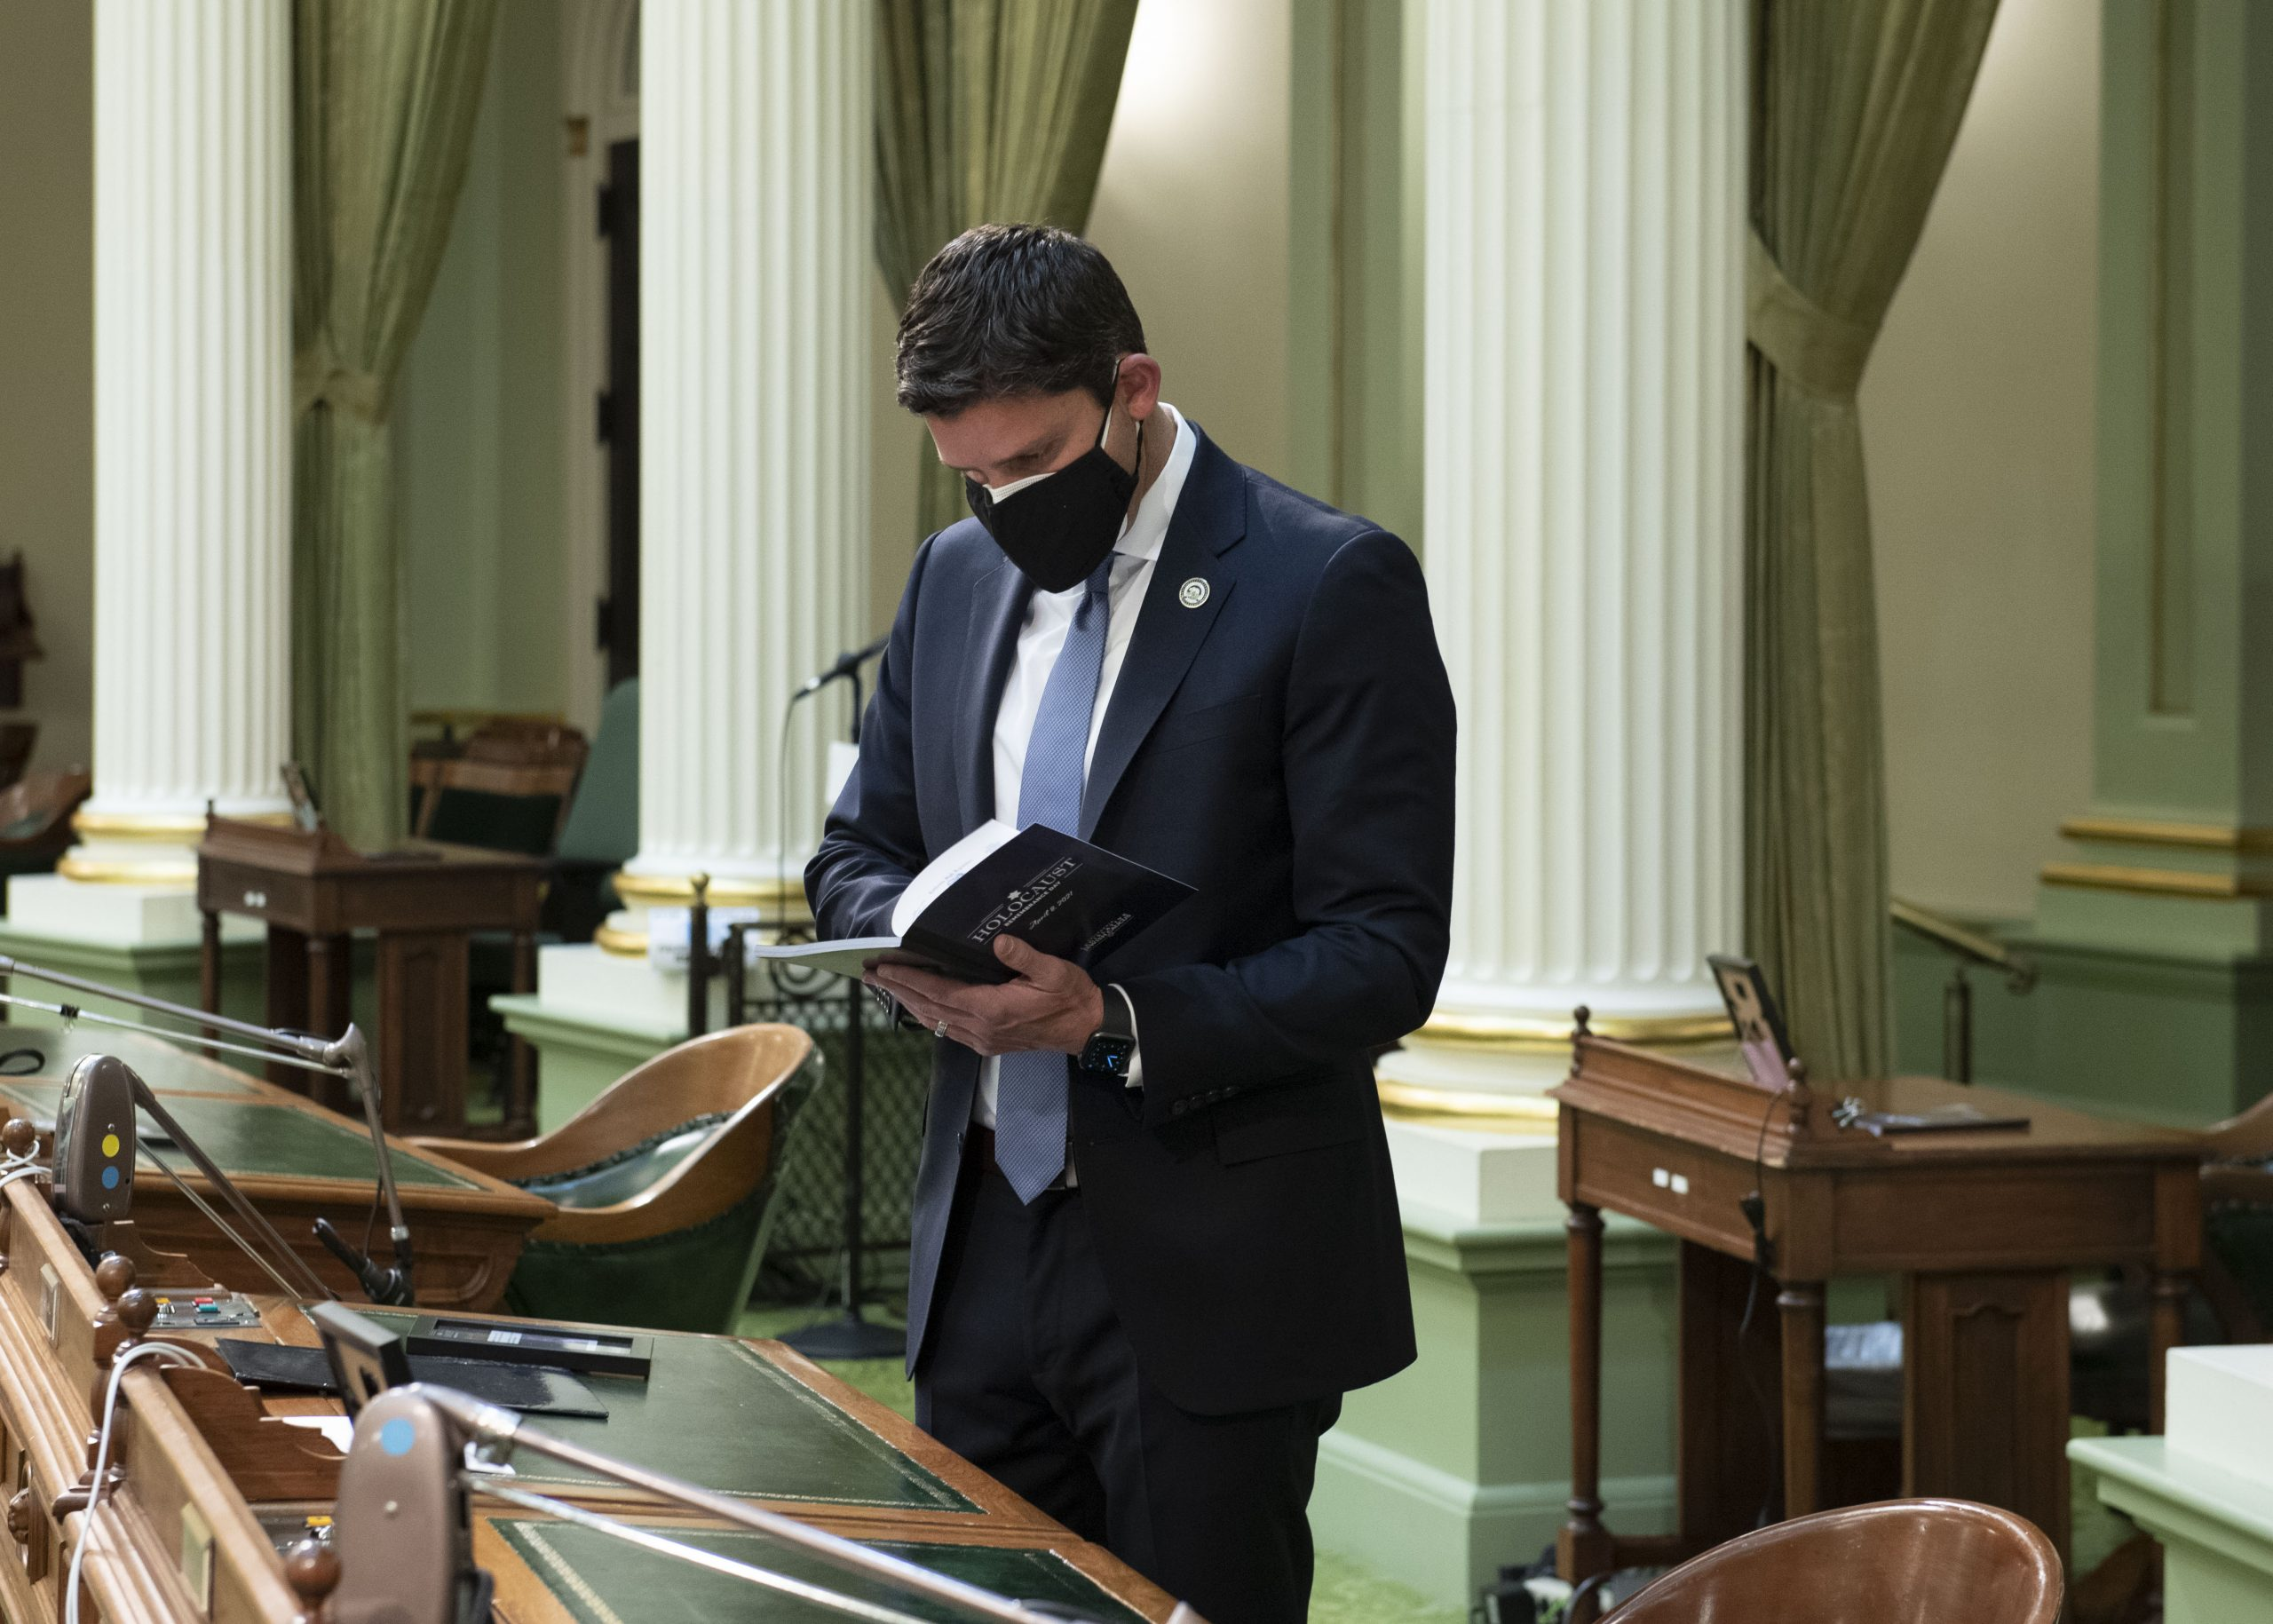 man in suit with mask reads book in state capitol chamber